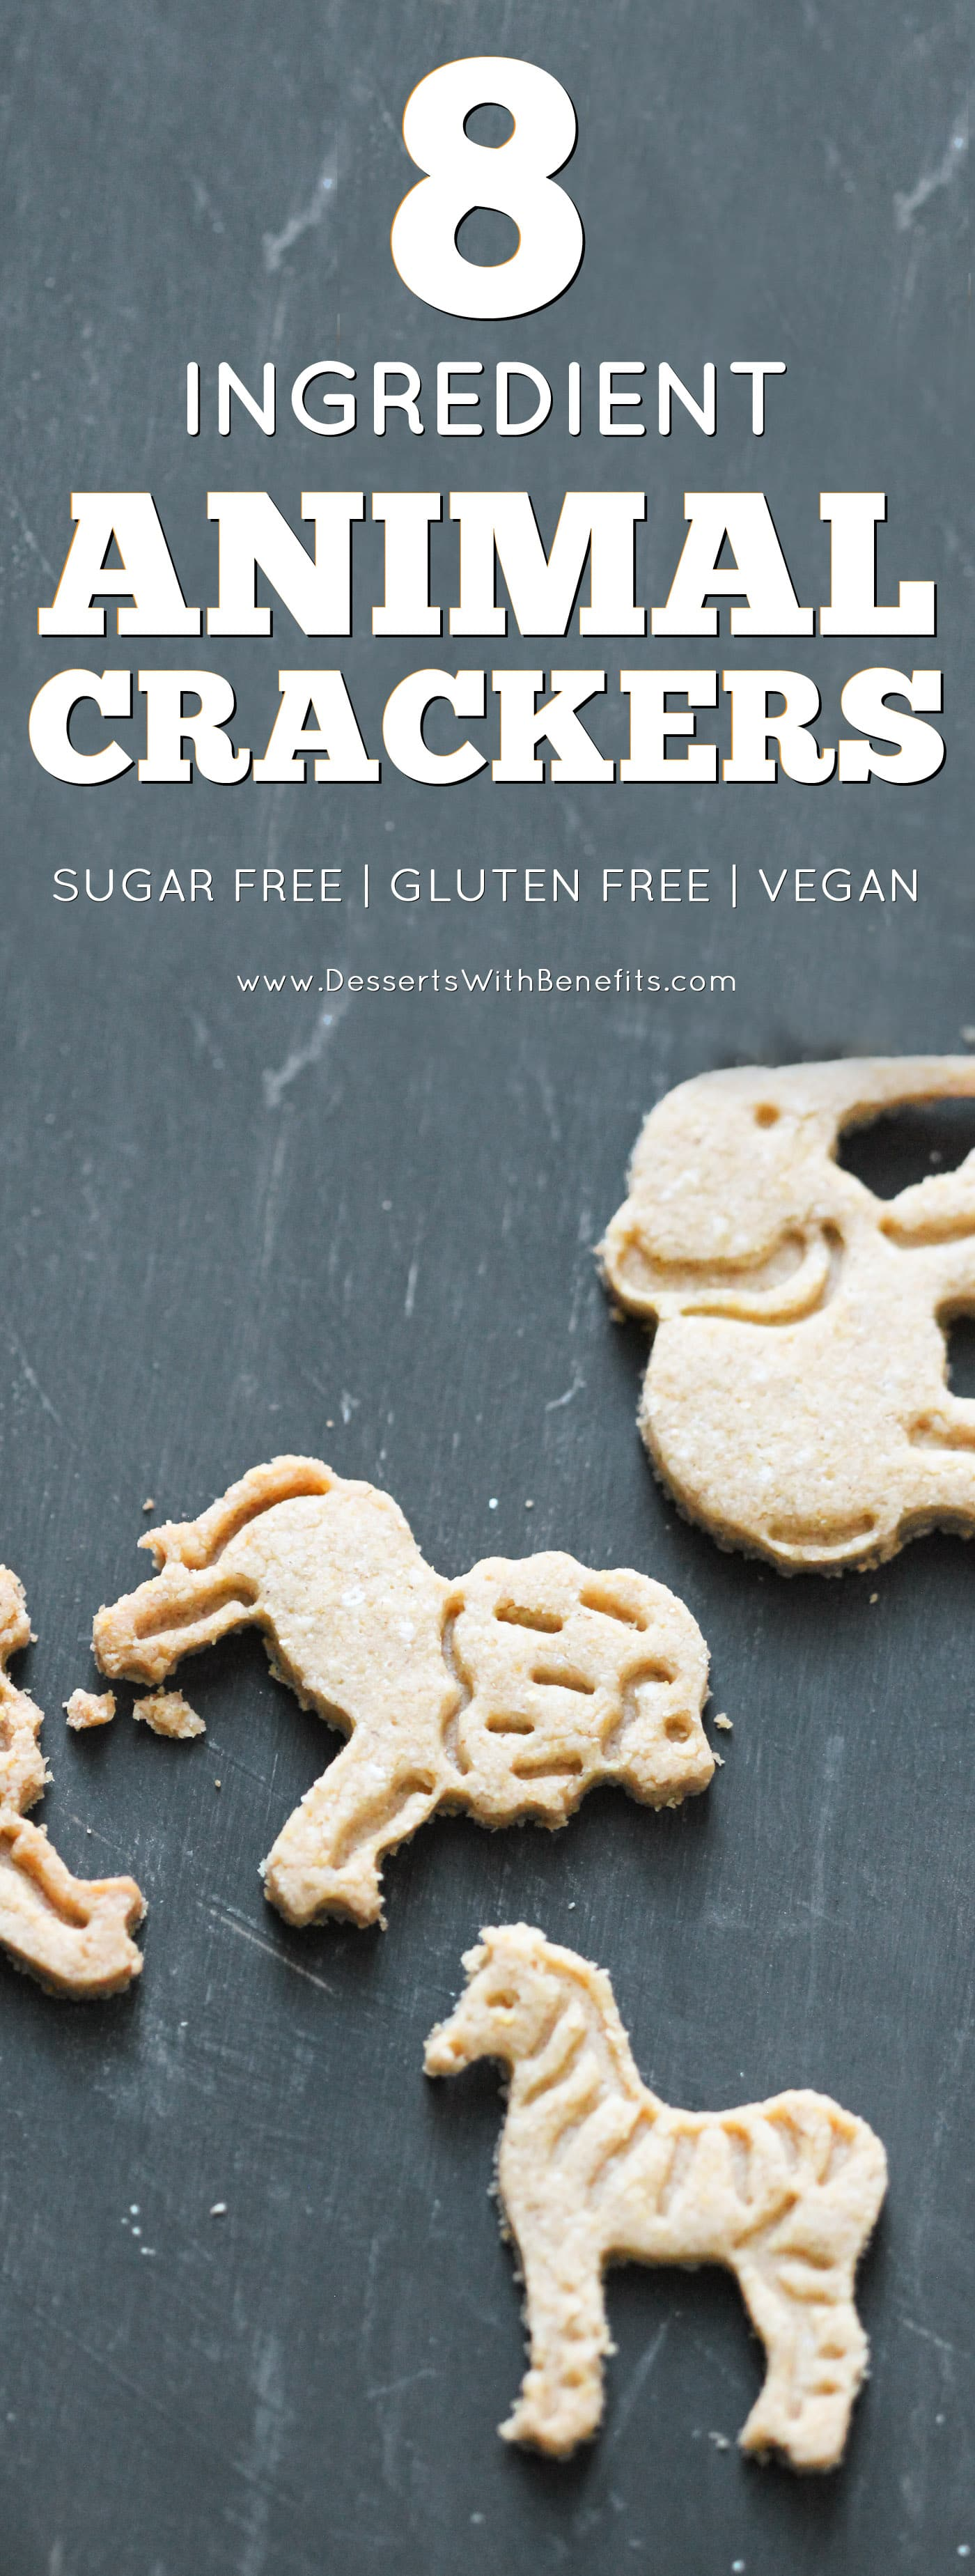 Healthy Back To School Recipe: Healthy Homemade Animal Crackers